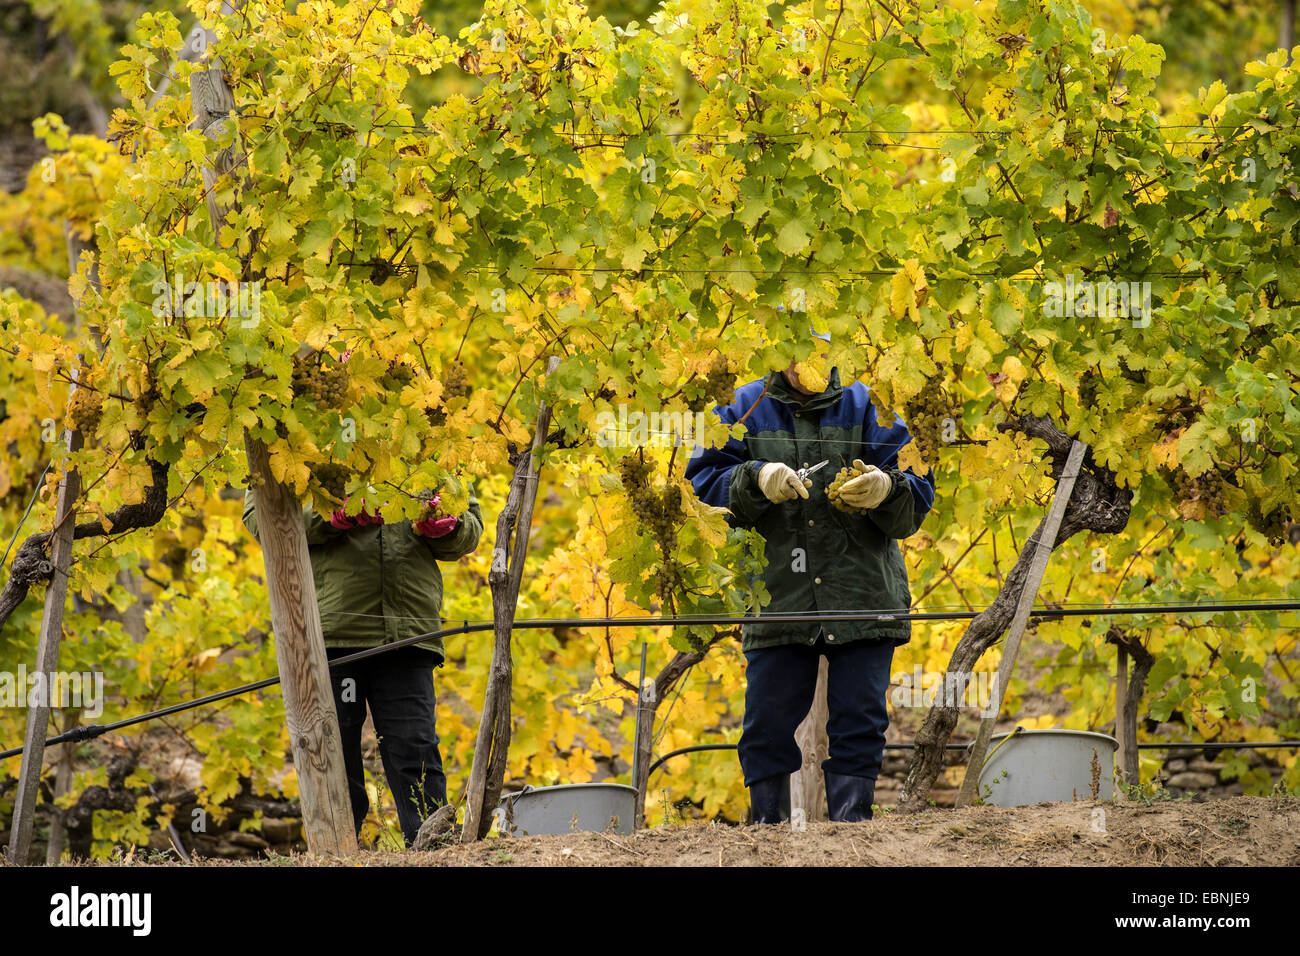 seasonal workers for the harvest of grapes at work, Austria, Lower Austria, Wachau - Stock Image